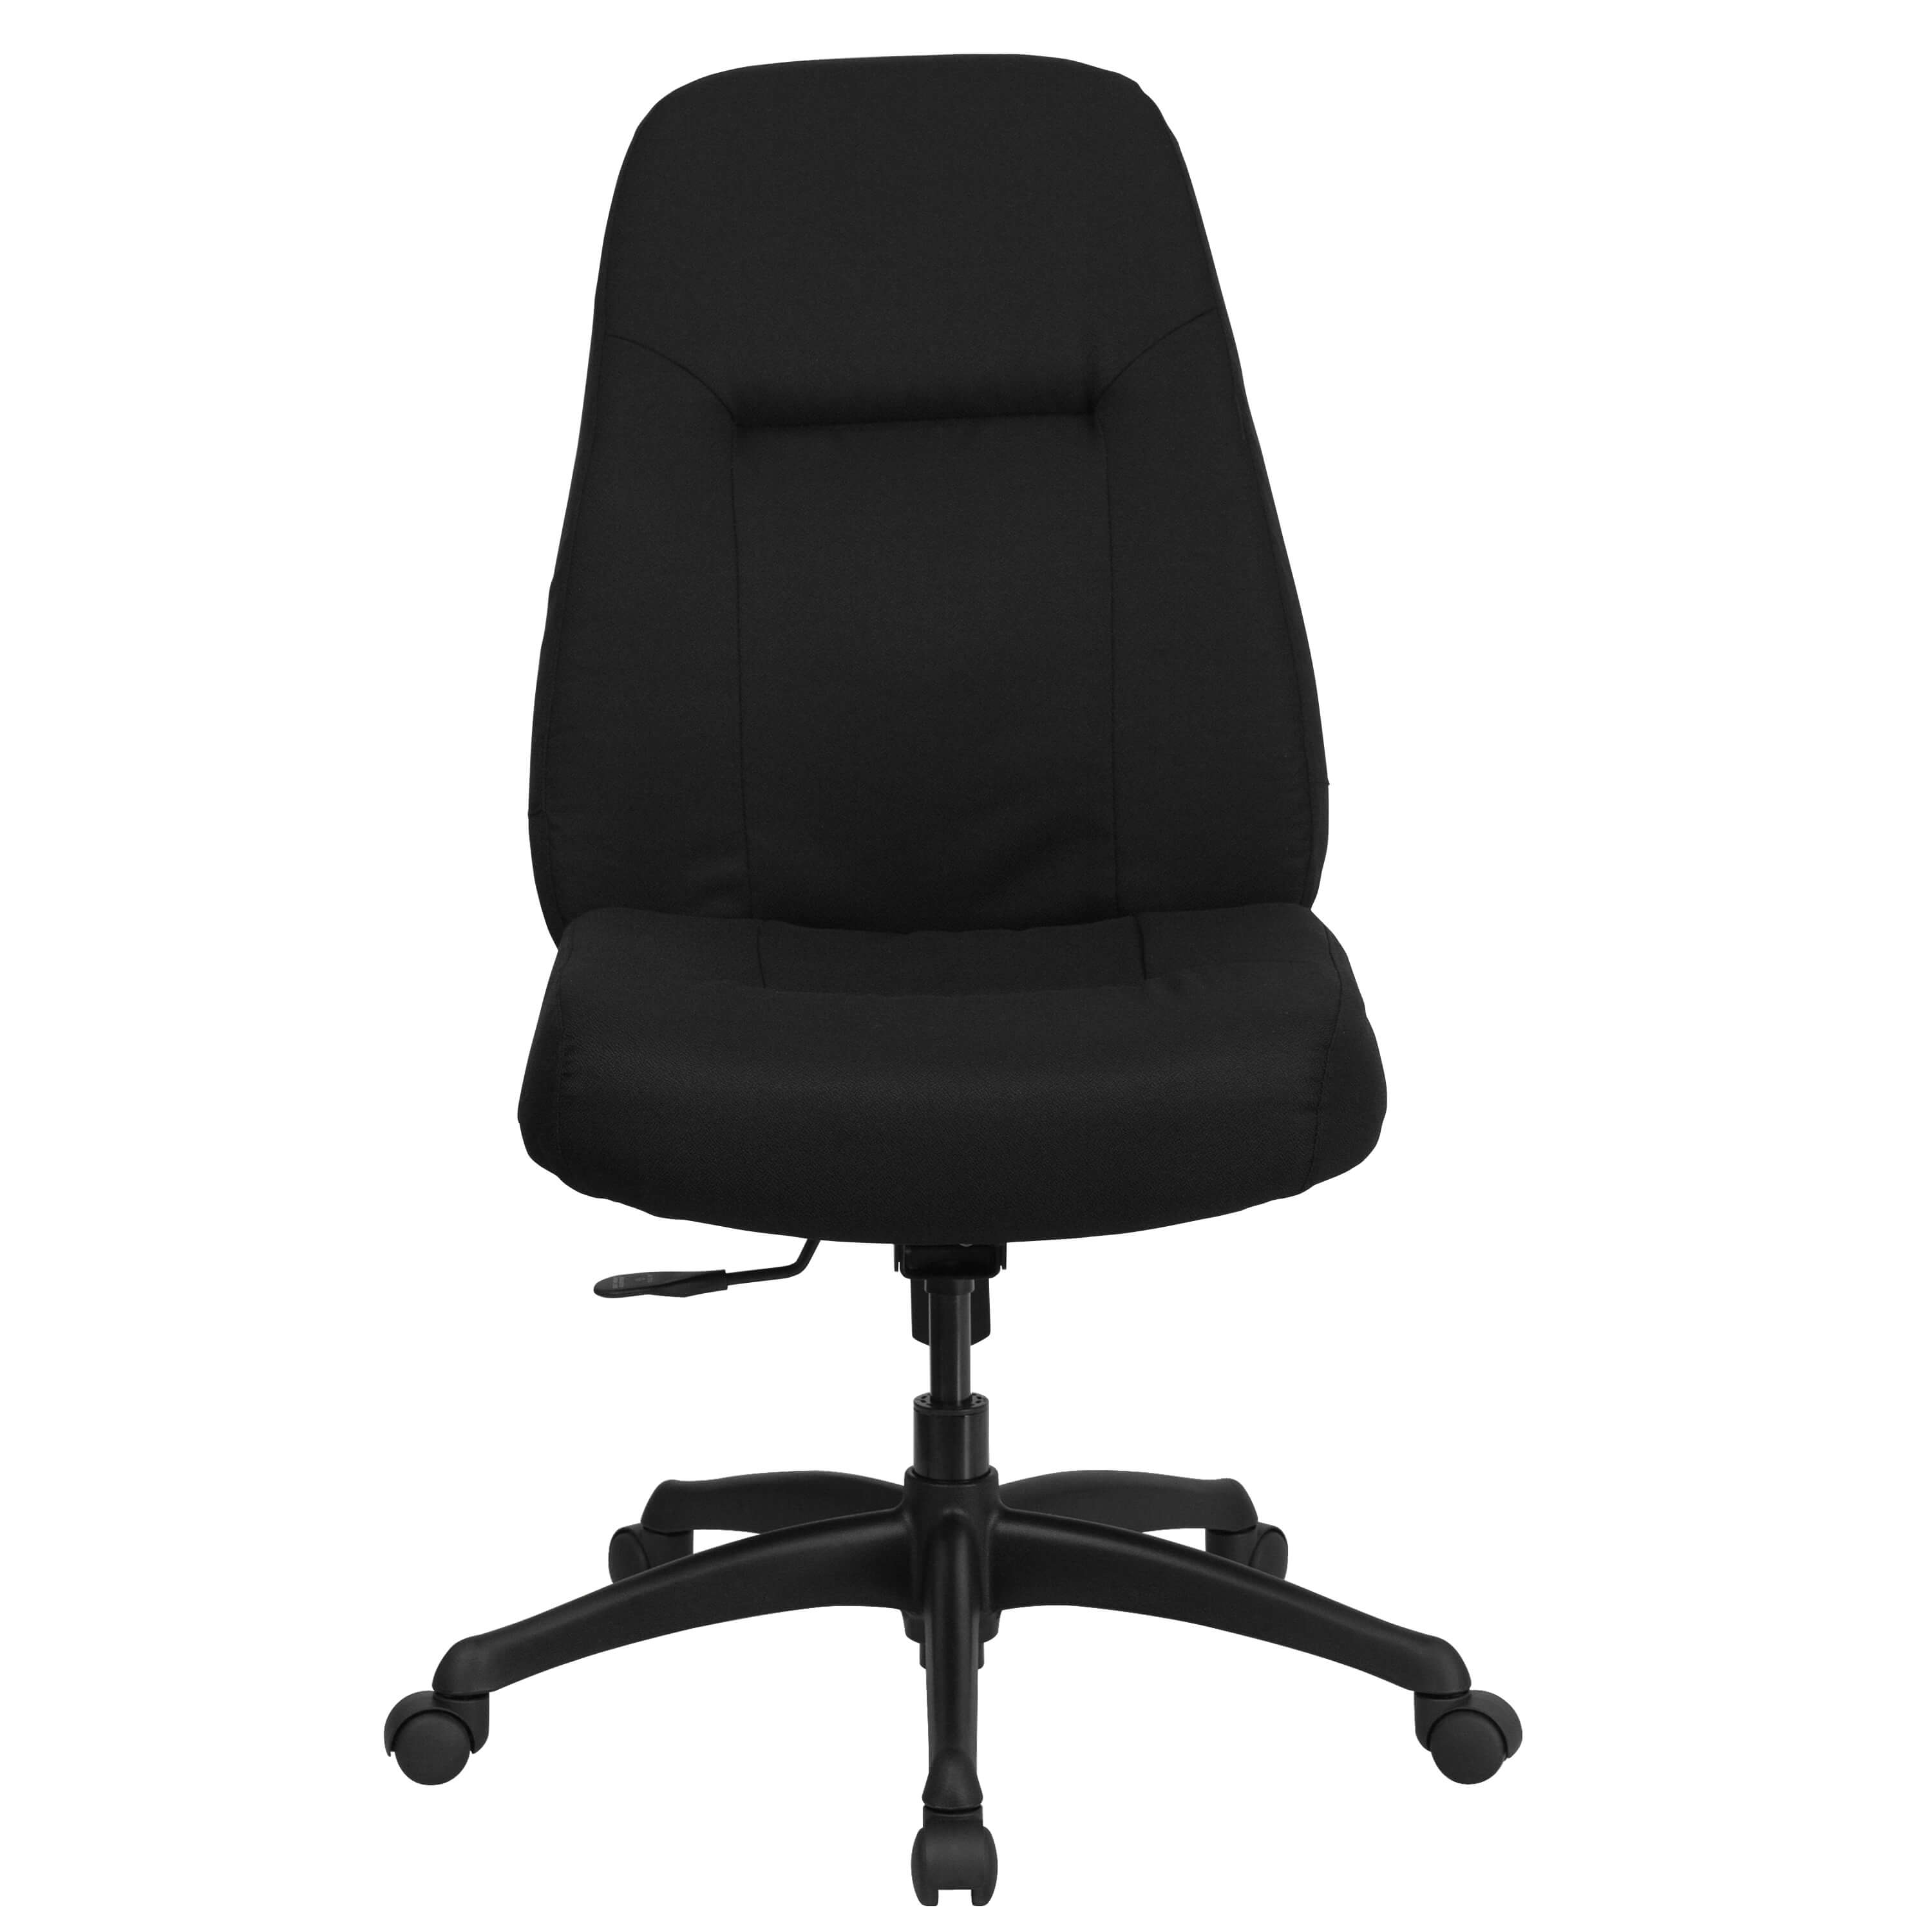 400 lb capacity office chair front view